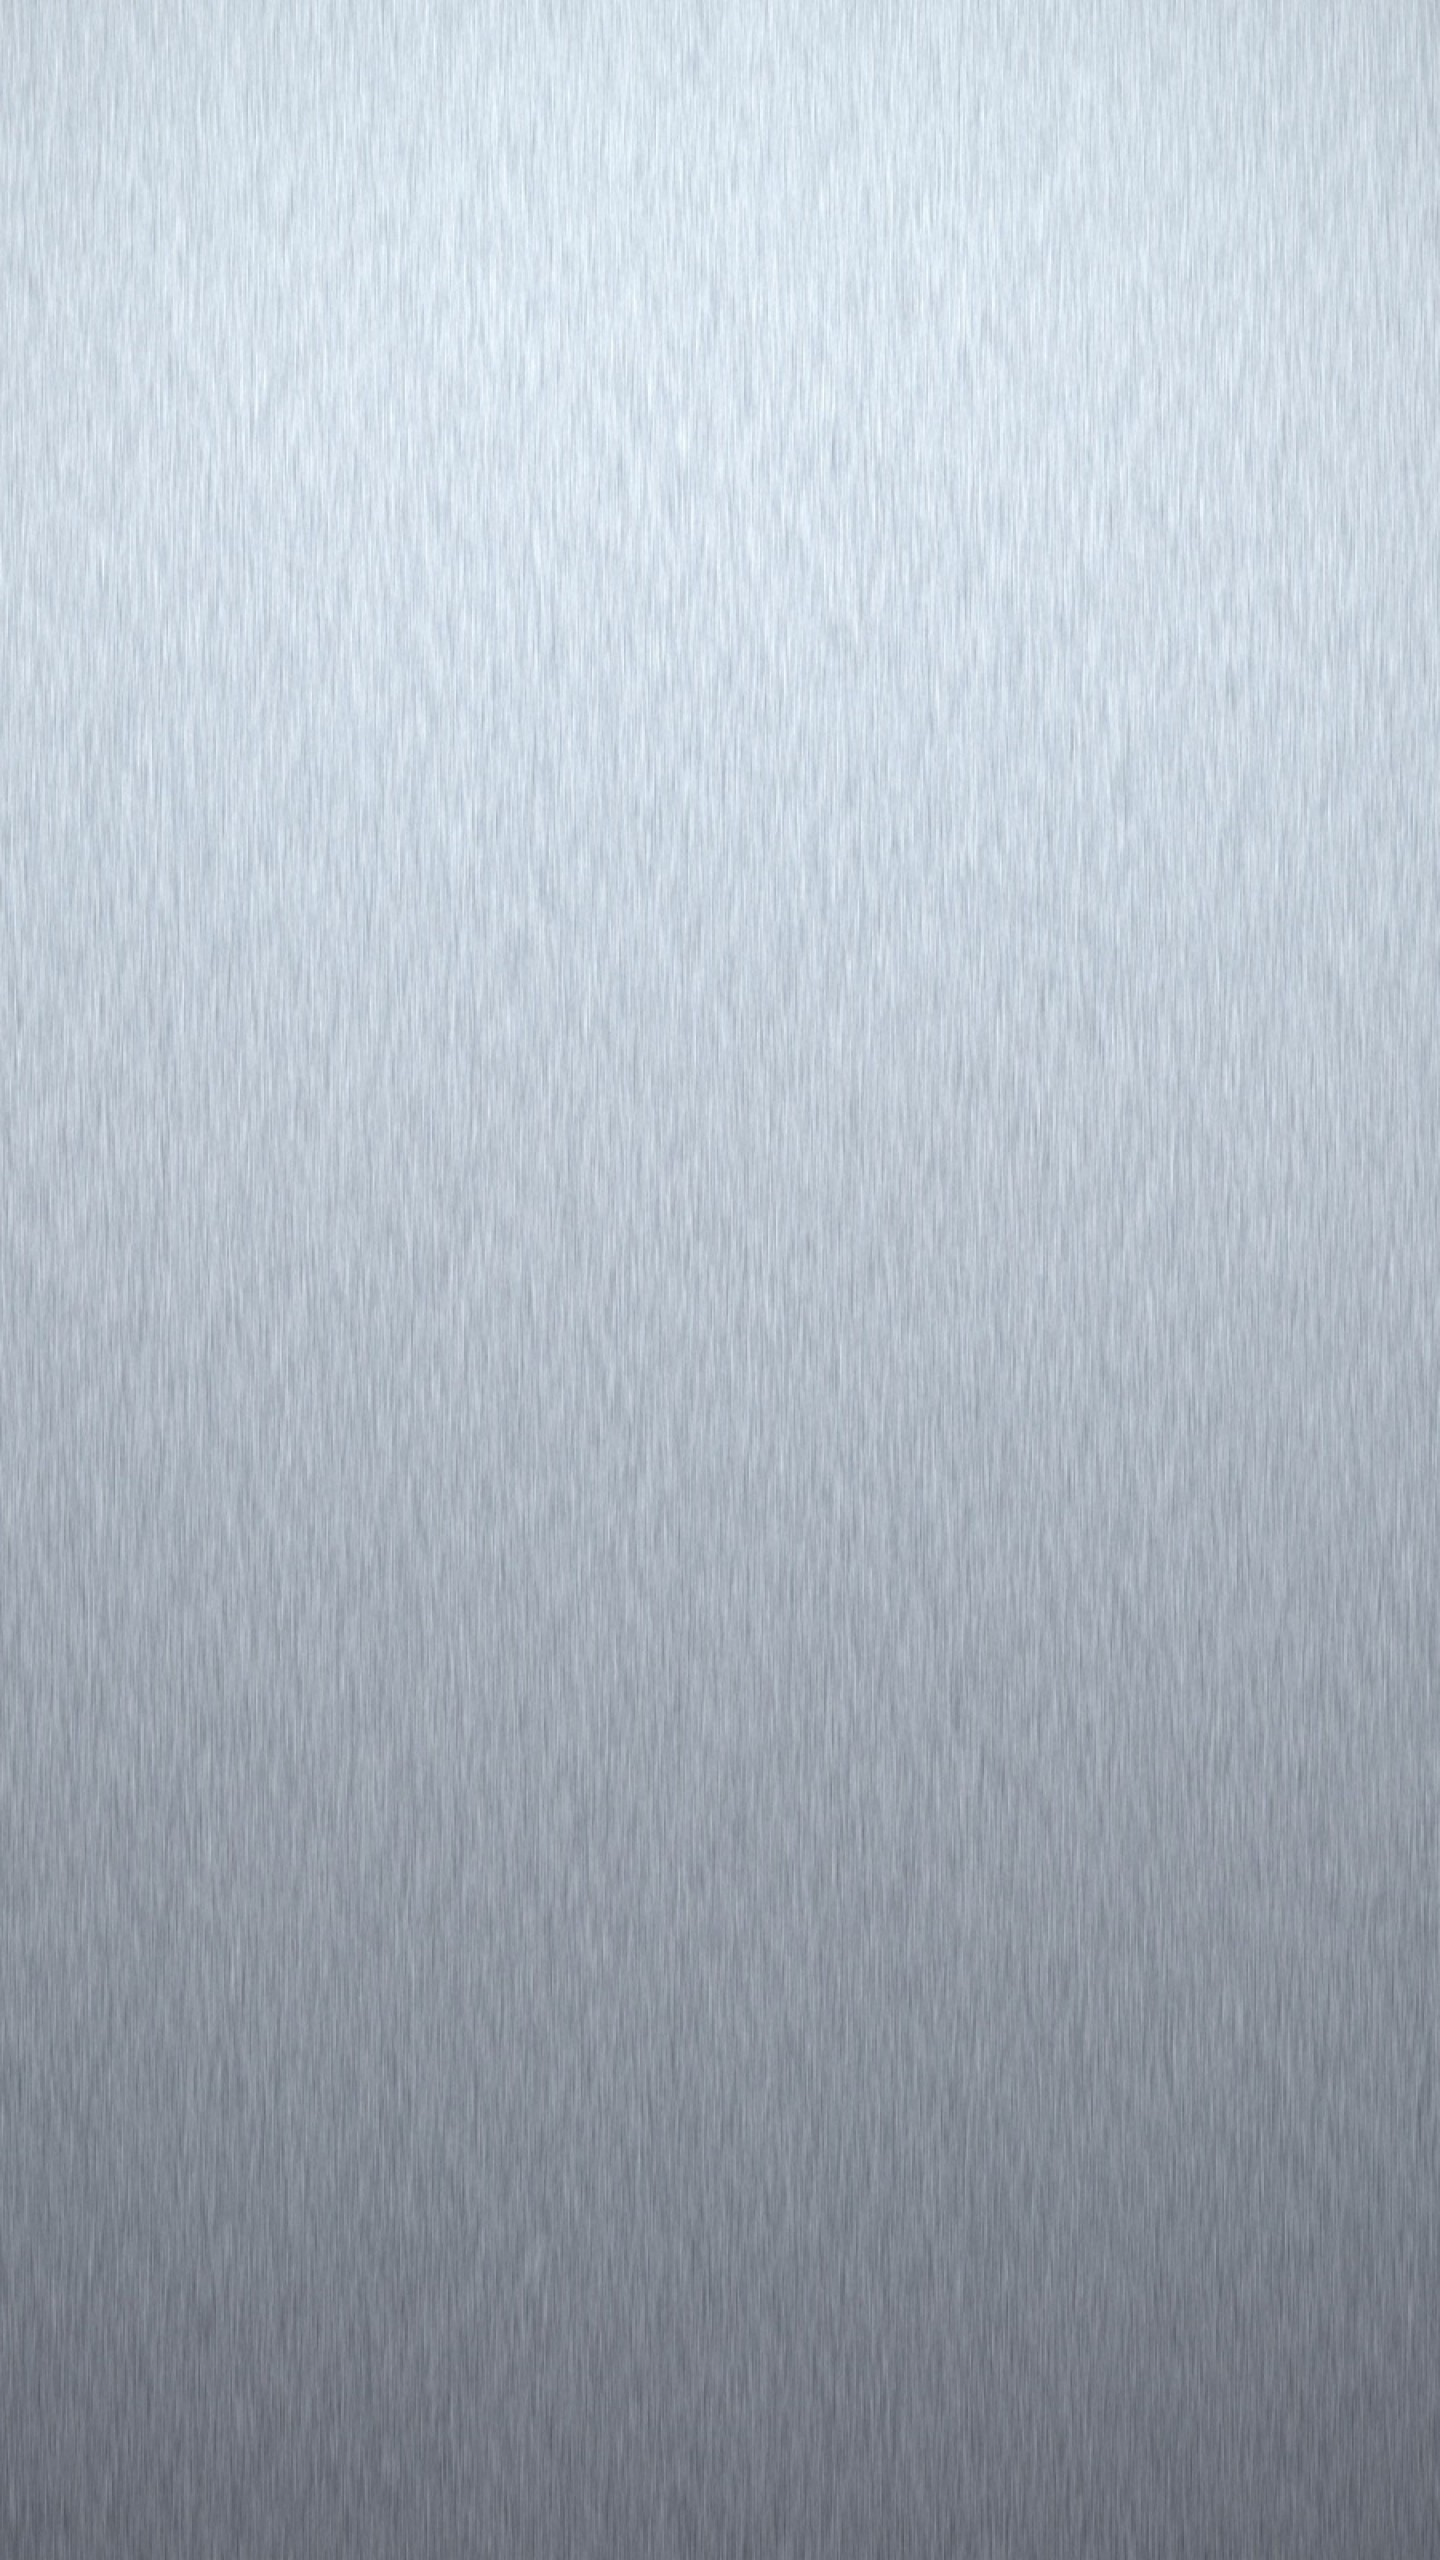 Wallpaper surface, light, silver, background